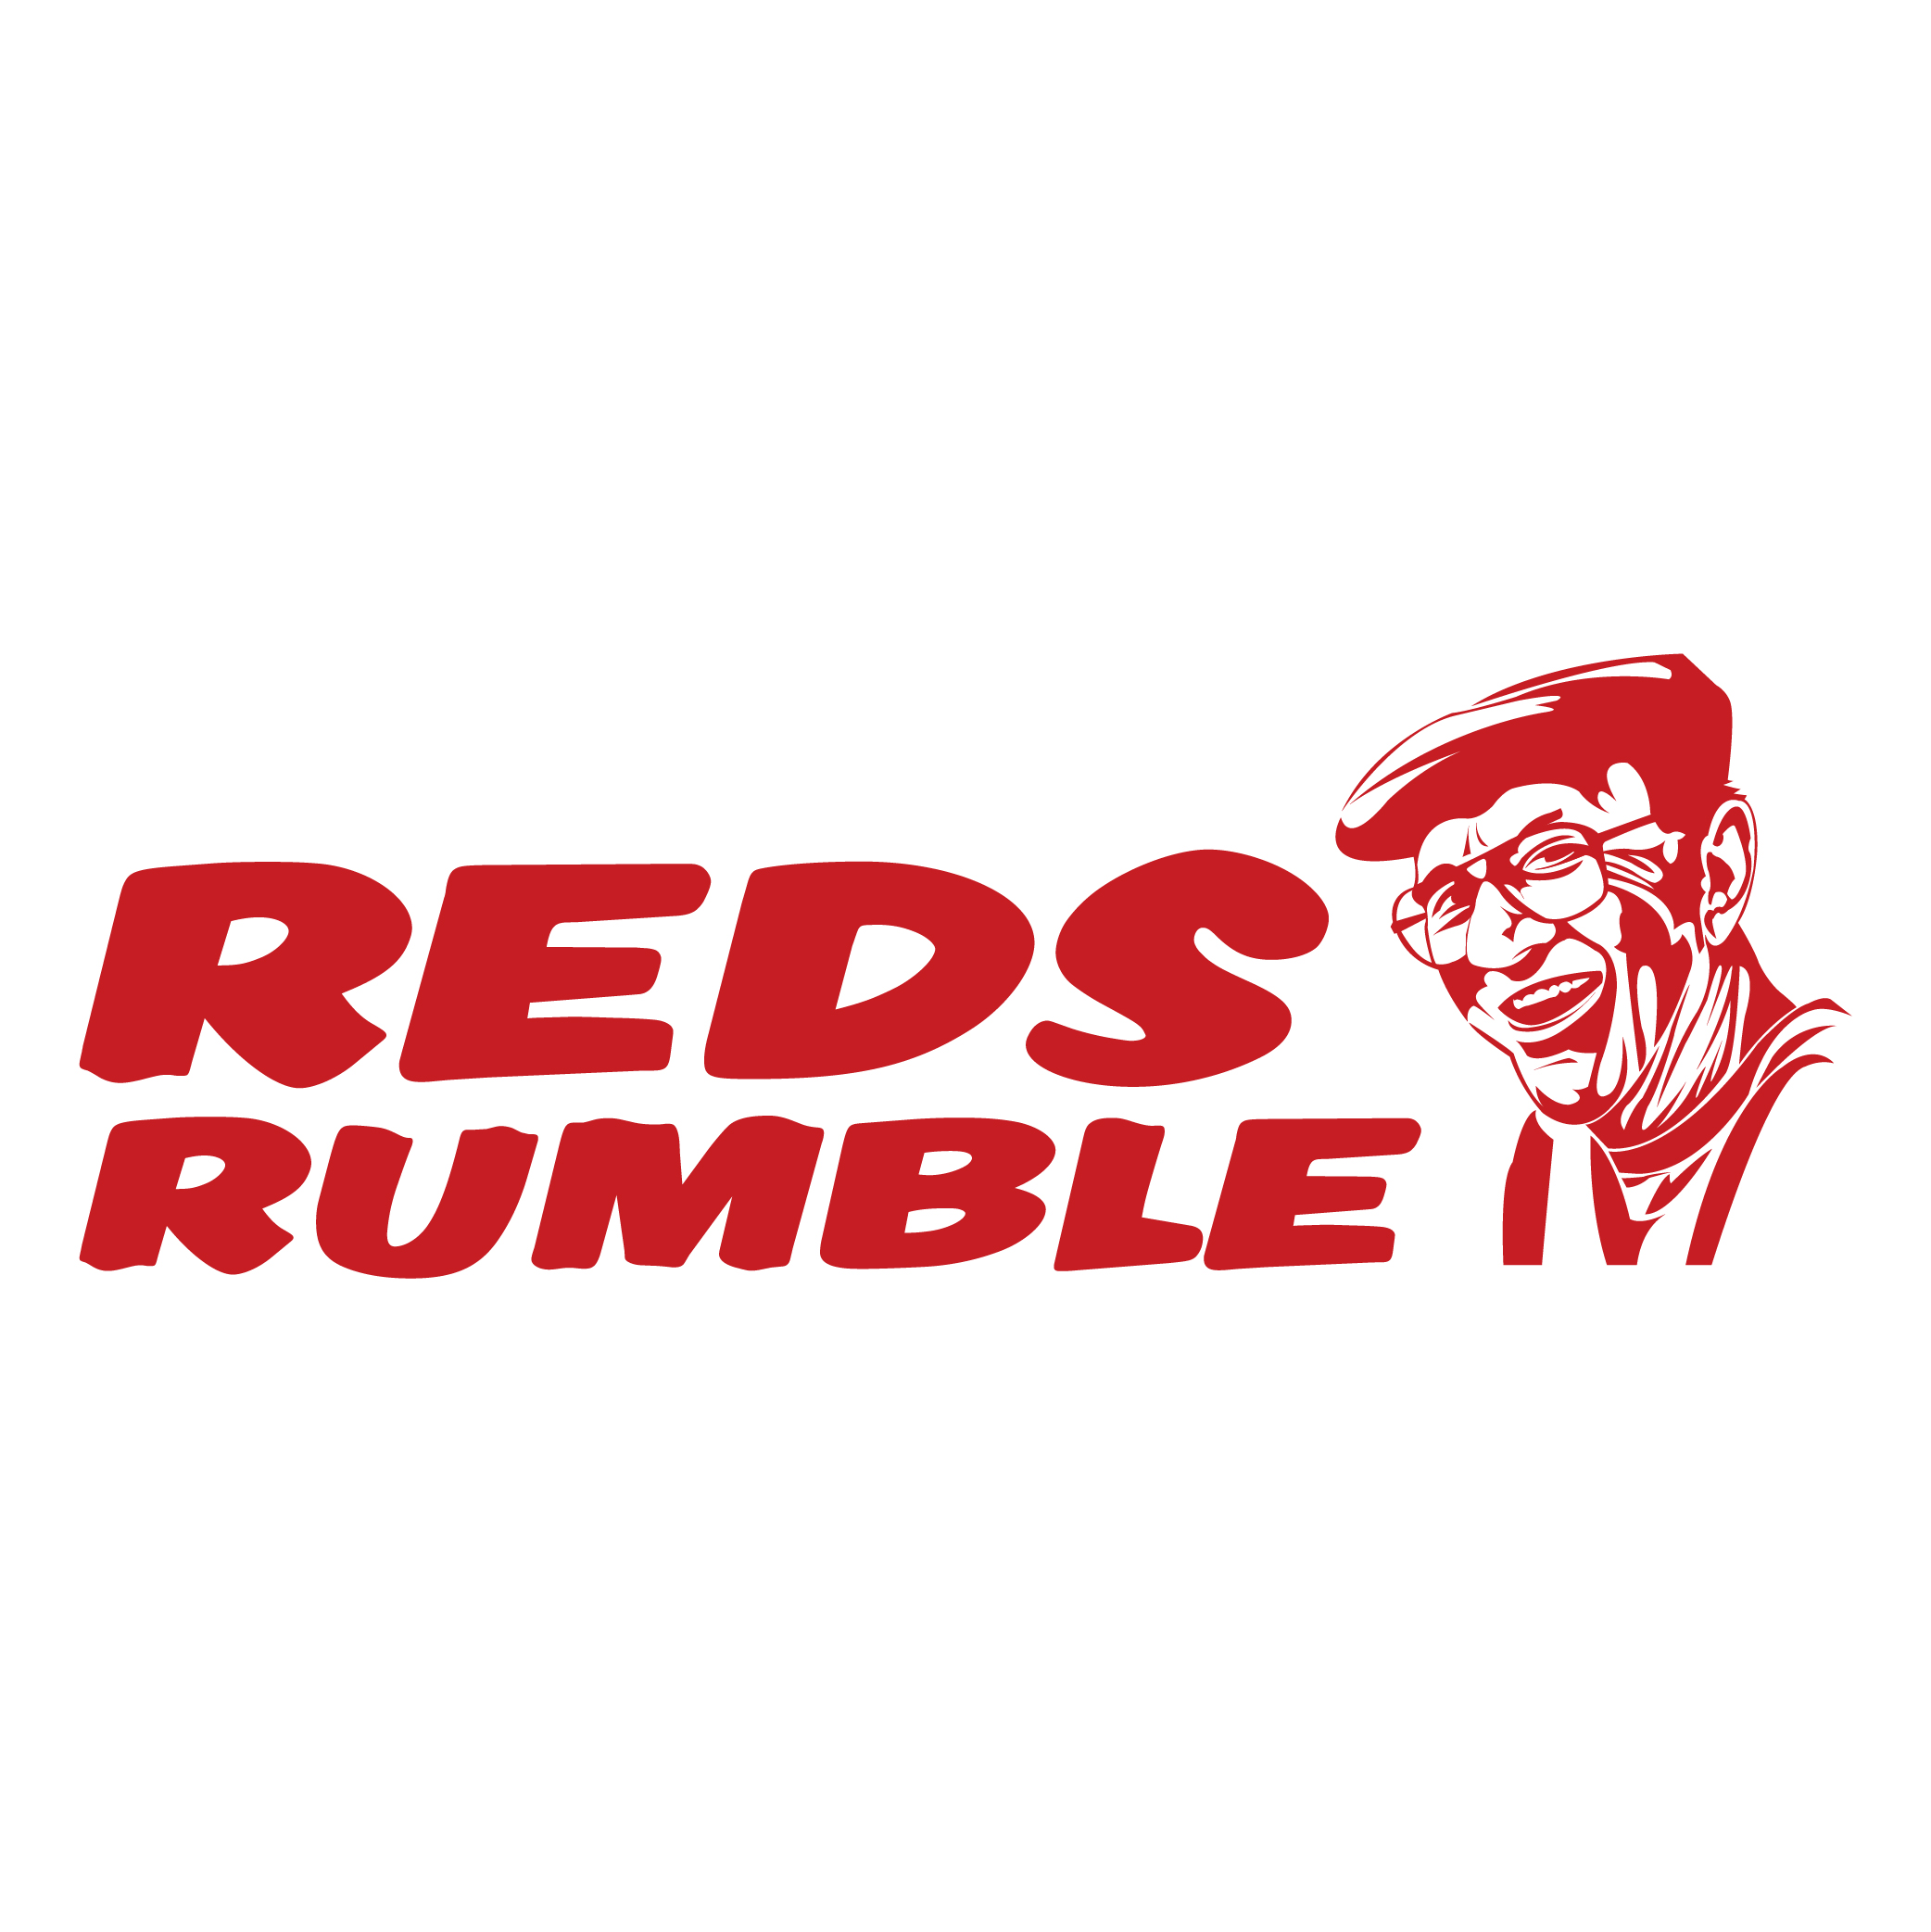 Reds Rumble